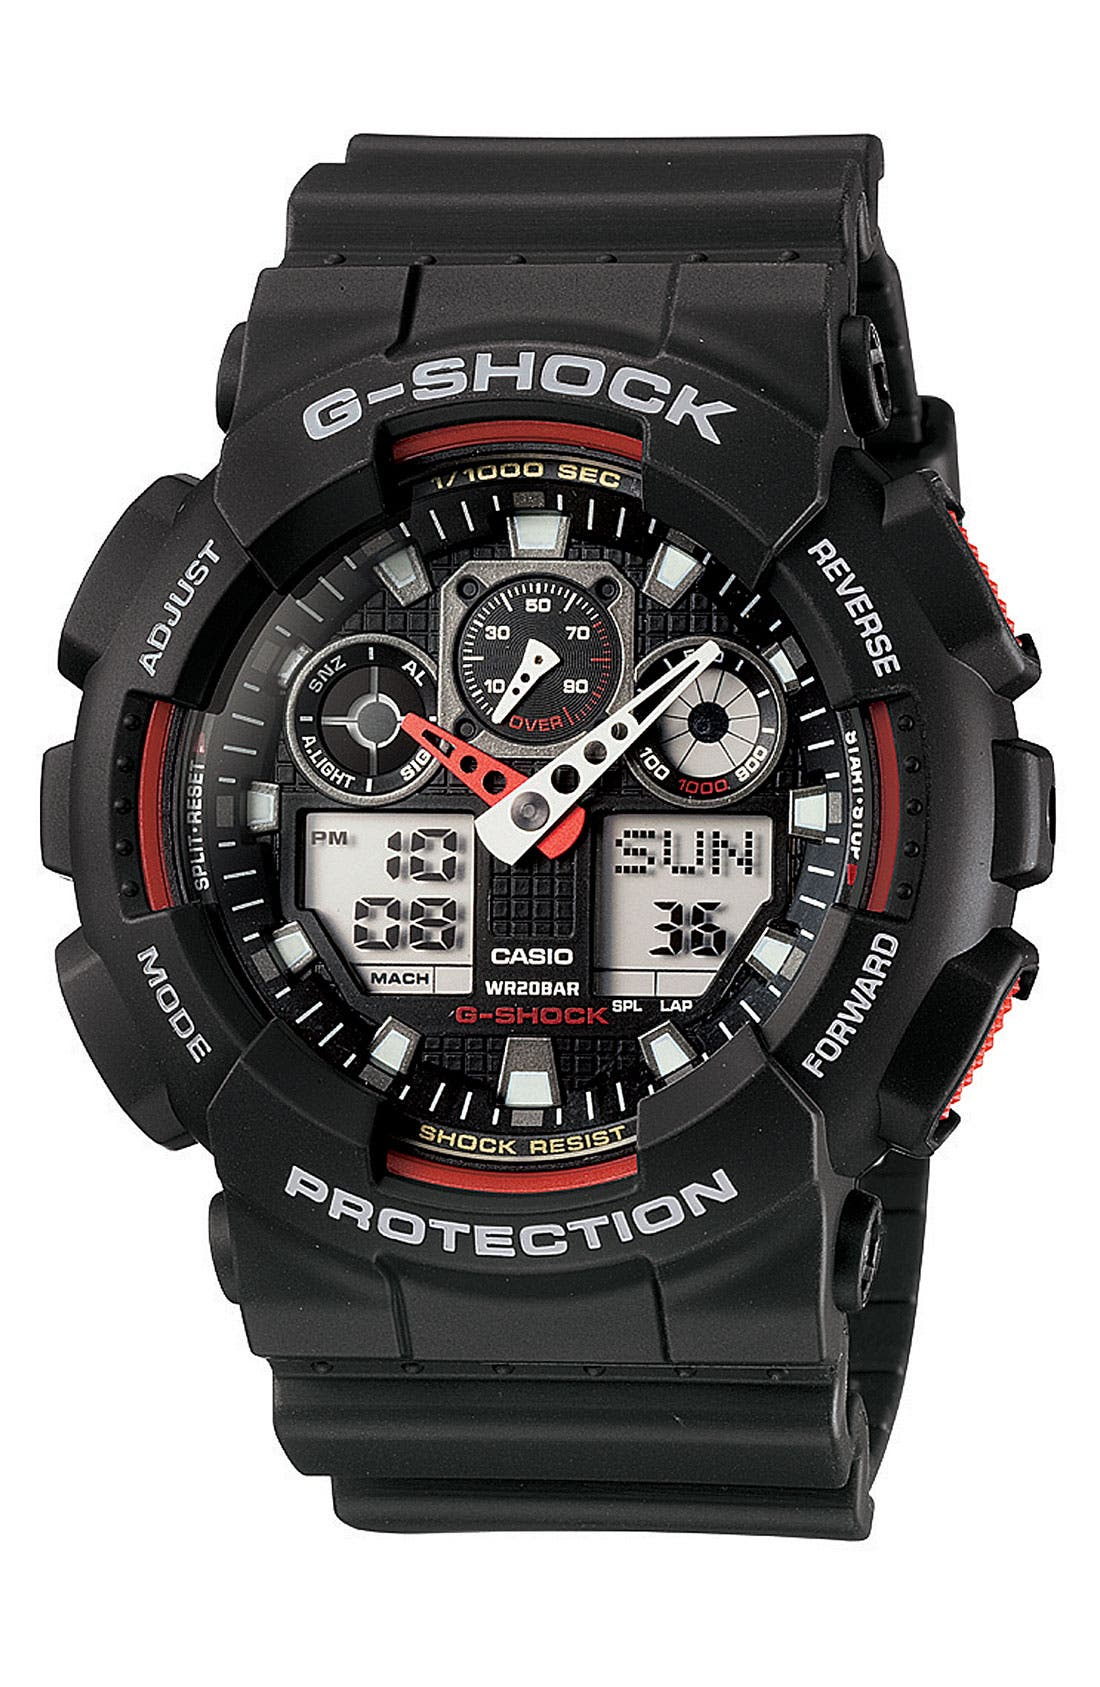 G-SHOCK BABY-G G-Shock 'Big Combi' Watch, 55mm x